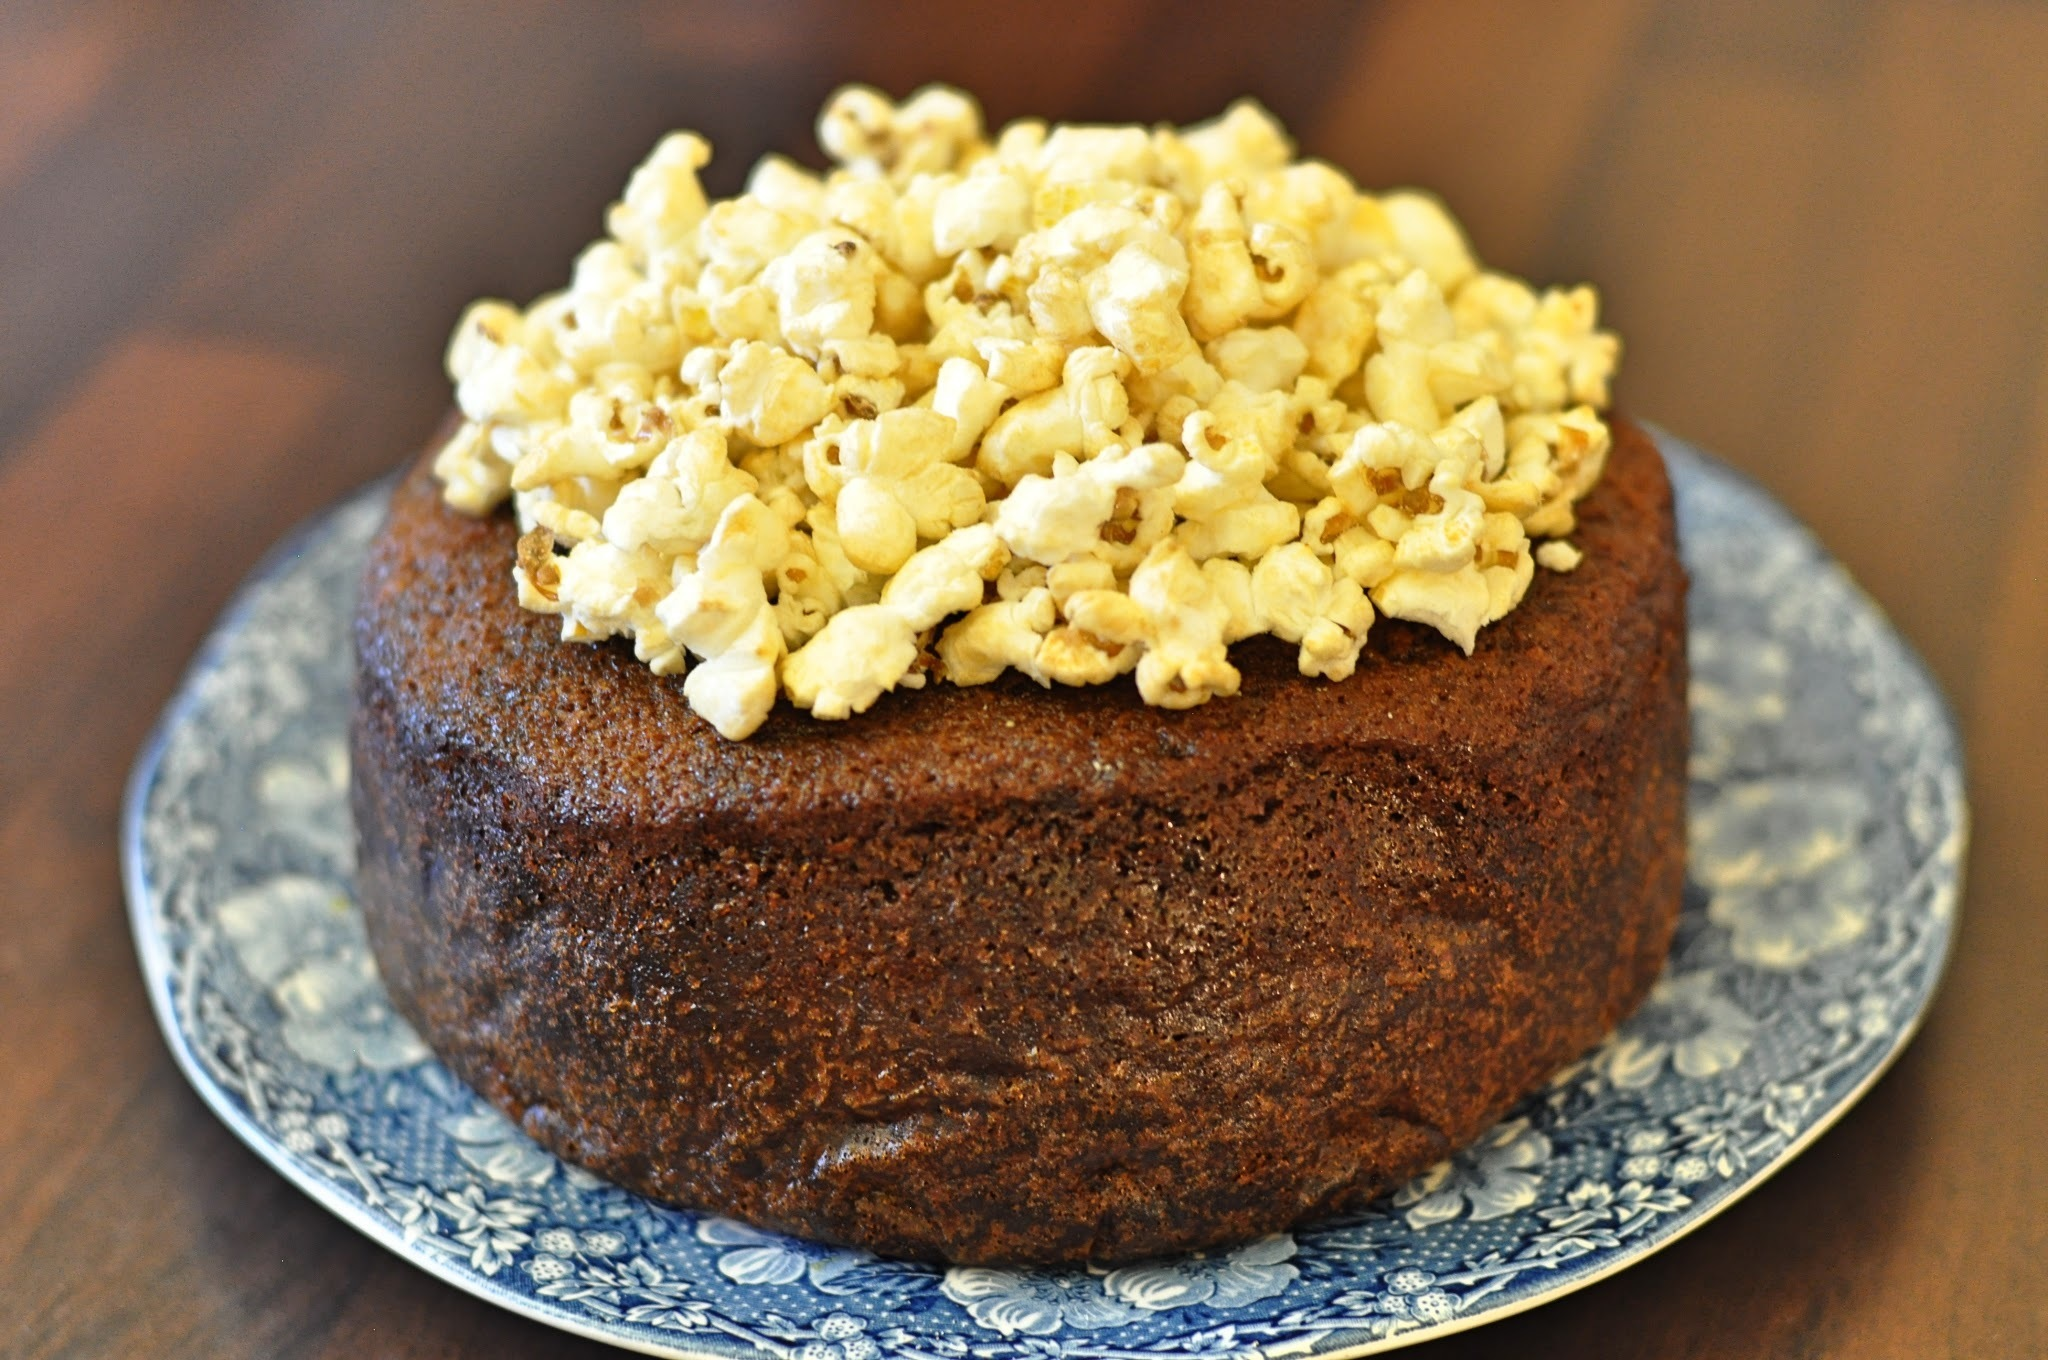 Ginger & Golden Syrup Bonfire Cake